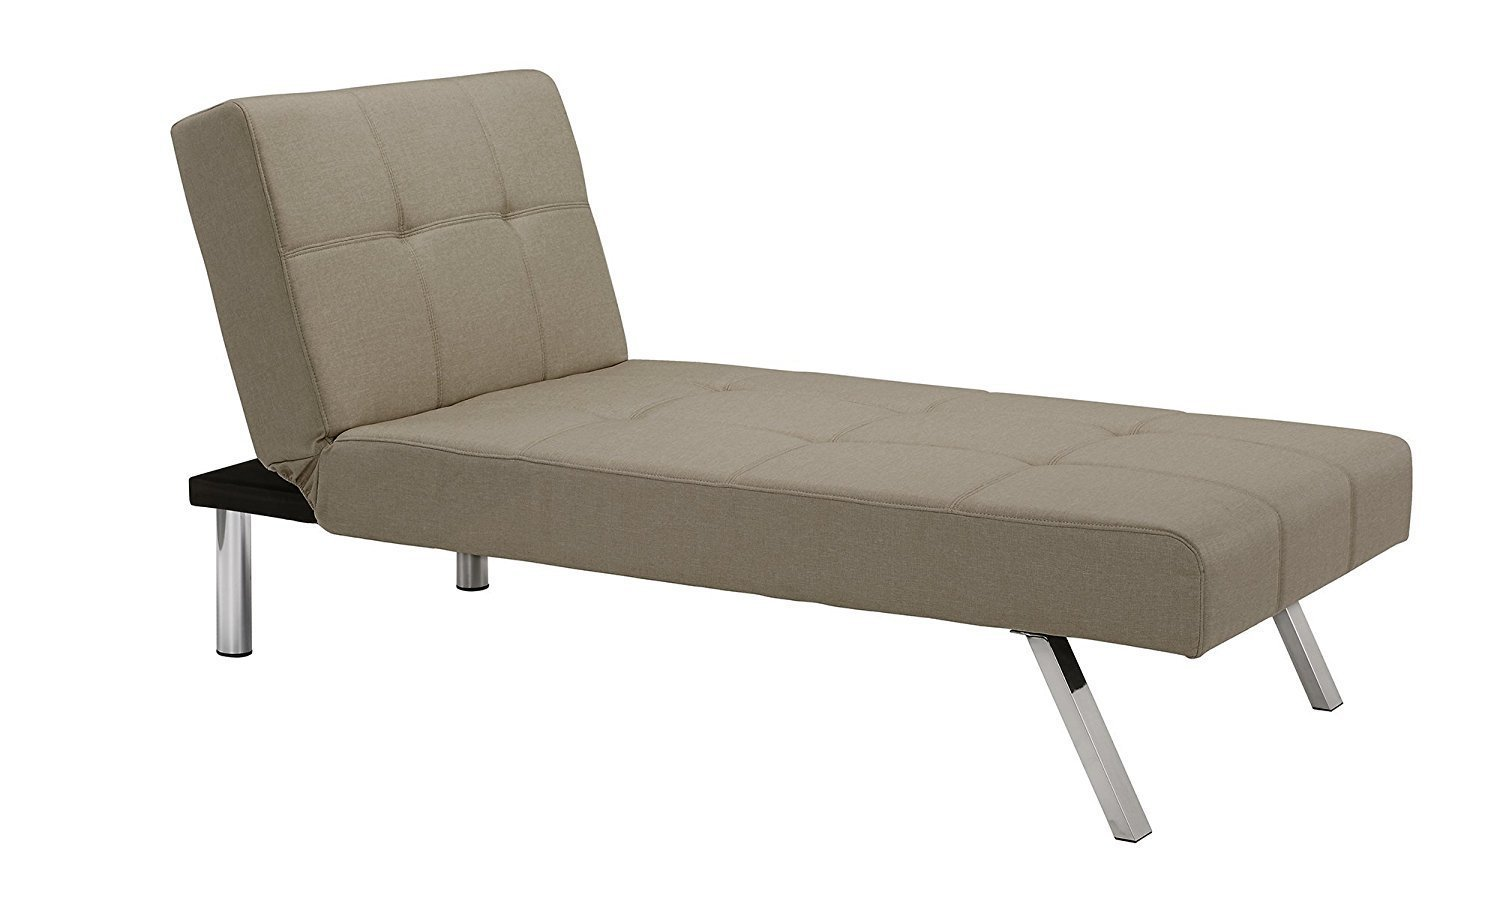 Sofa With Chaise Lounge Sectional Sofa With Chaise Lounge Home Furniture Design